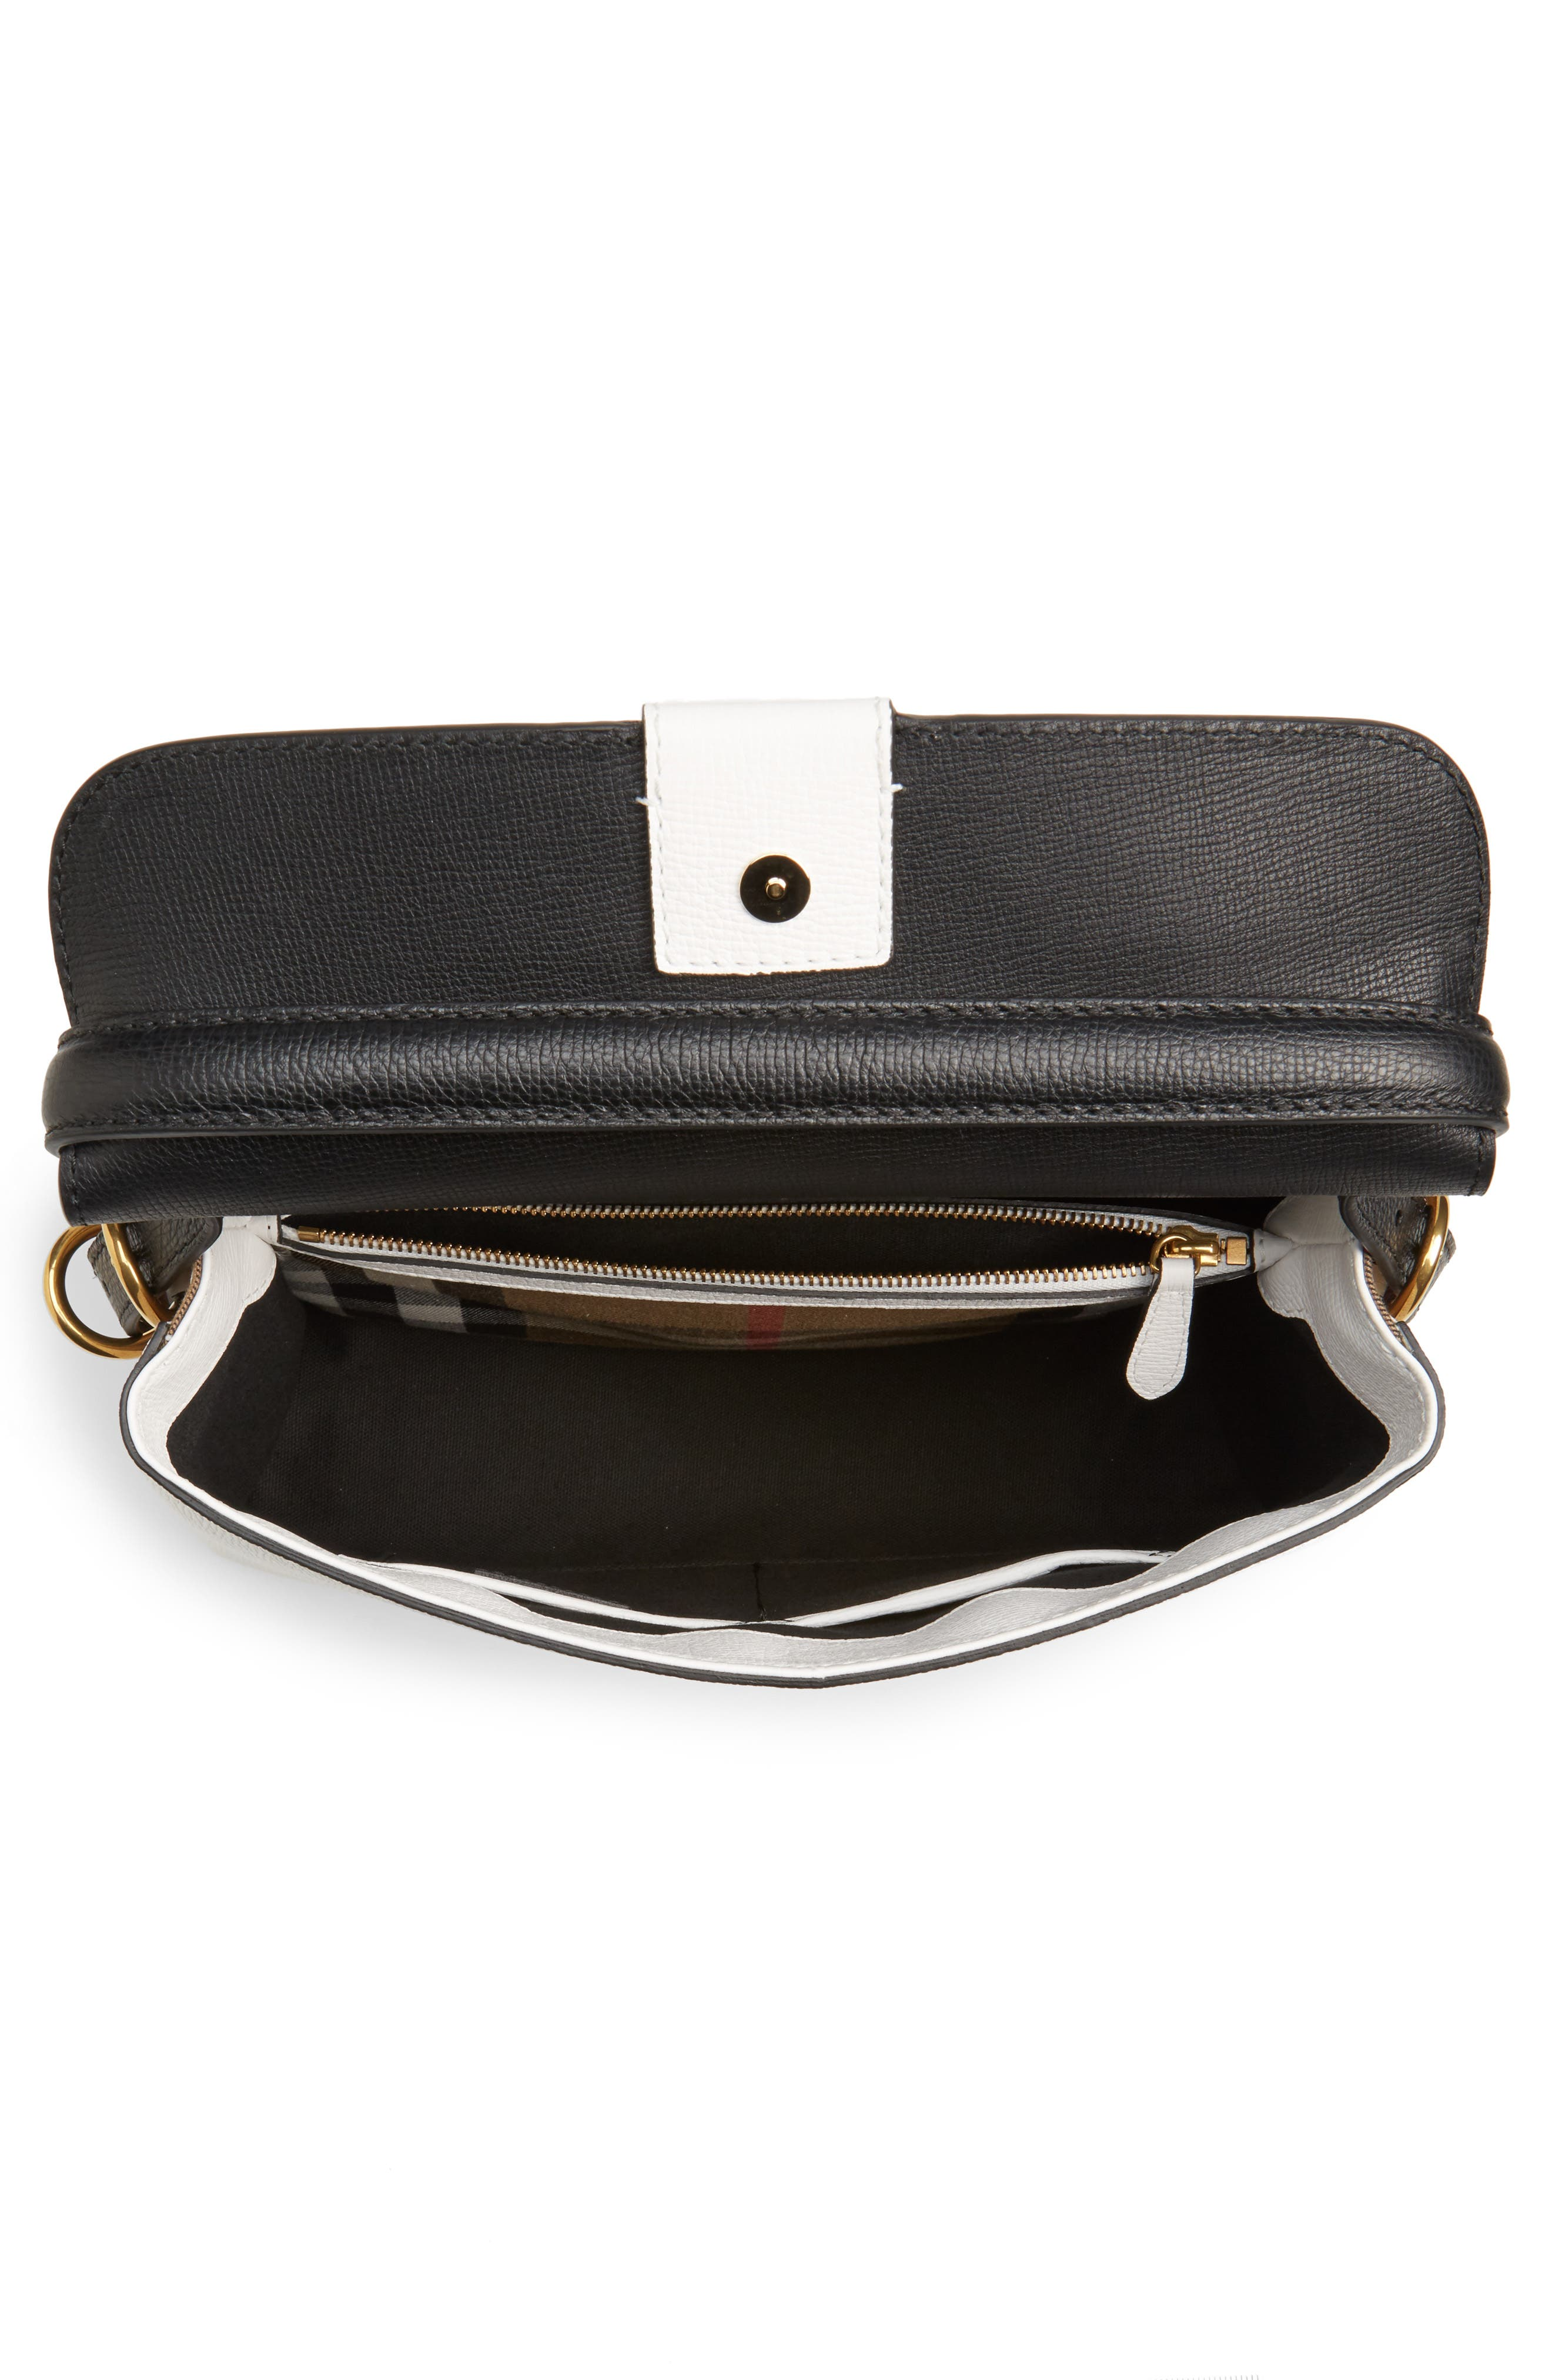 Medium Camberley Colorblock Leather & House Check Top Handle Satchel,                             Alternate thumbnail 4, color,                             White/ Black